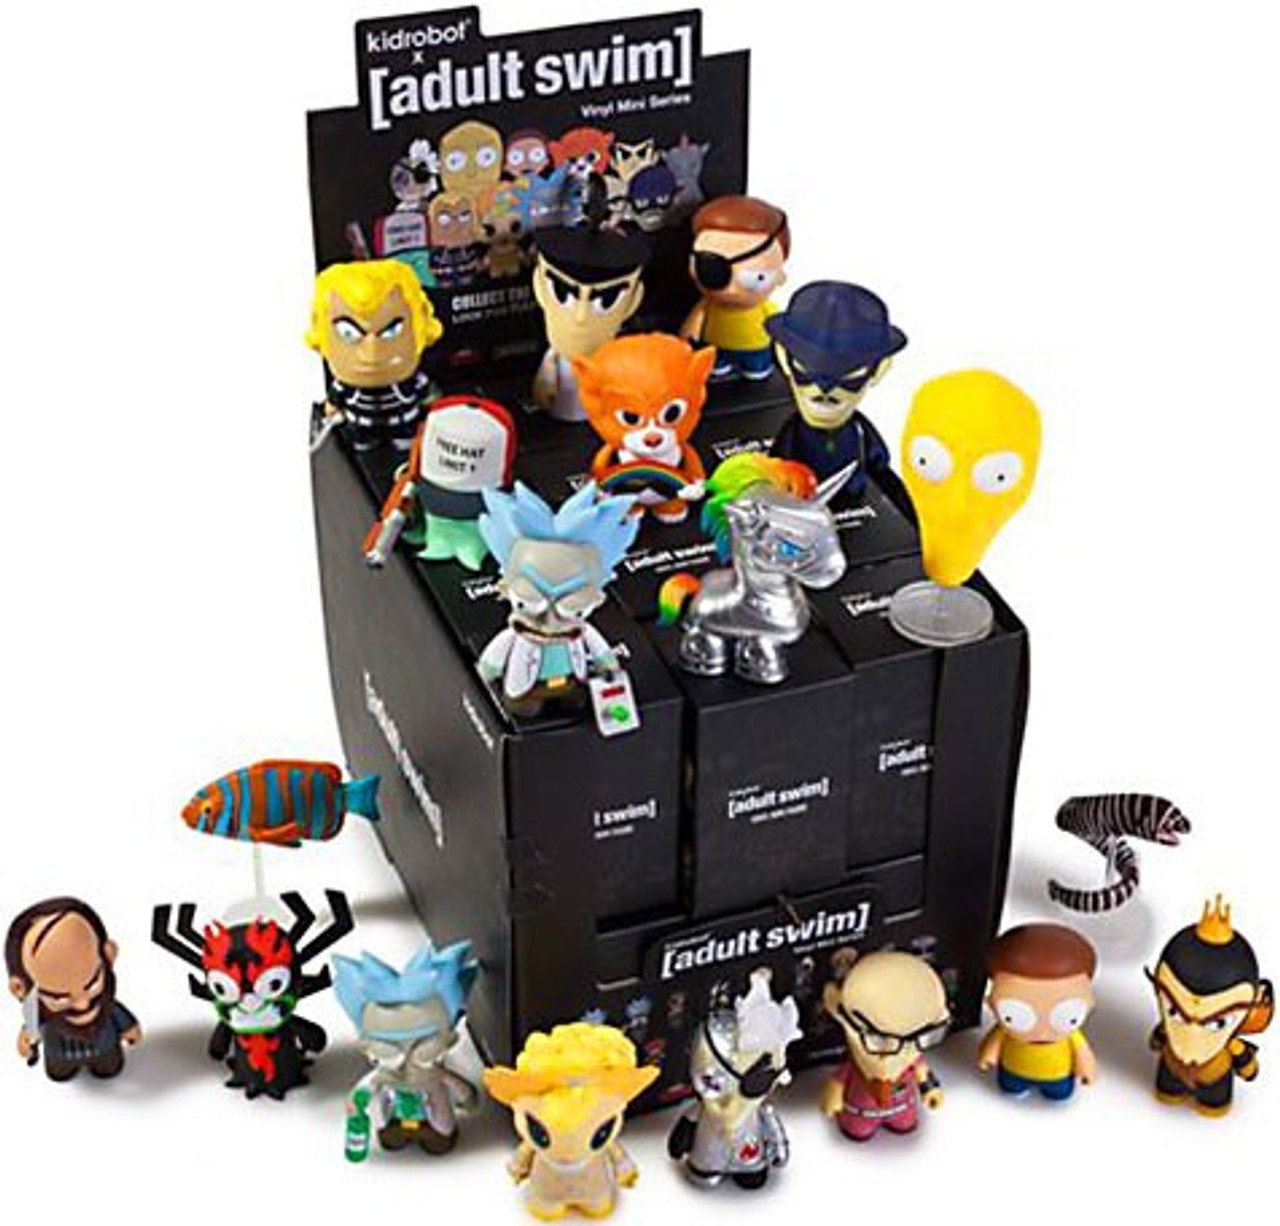 Adult Swim Mini Series One Made by Kidrobot Brand New in Box Early